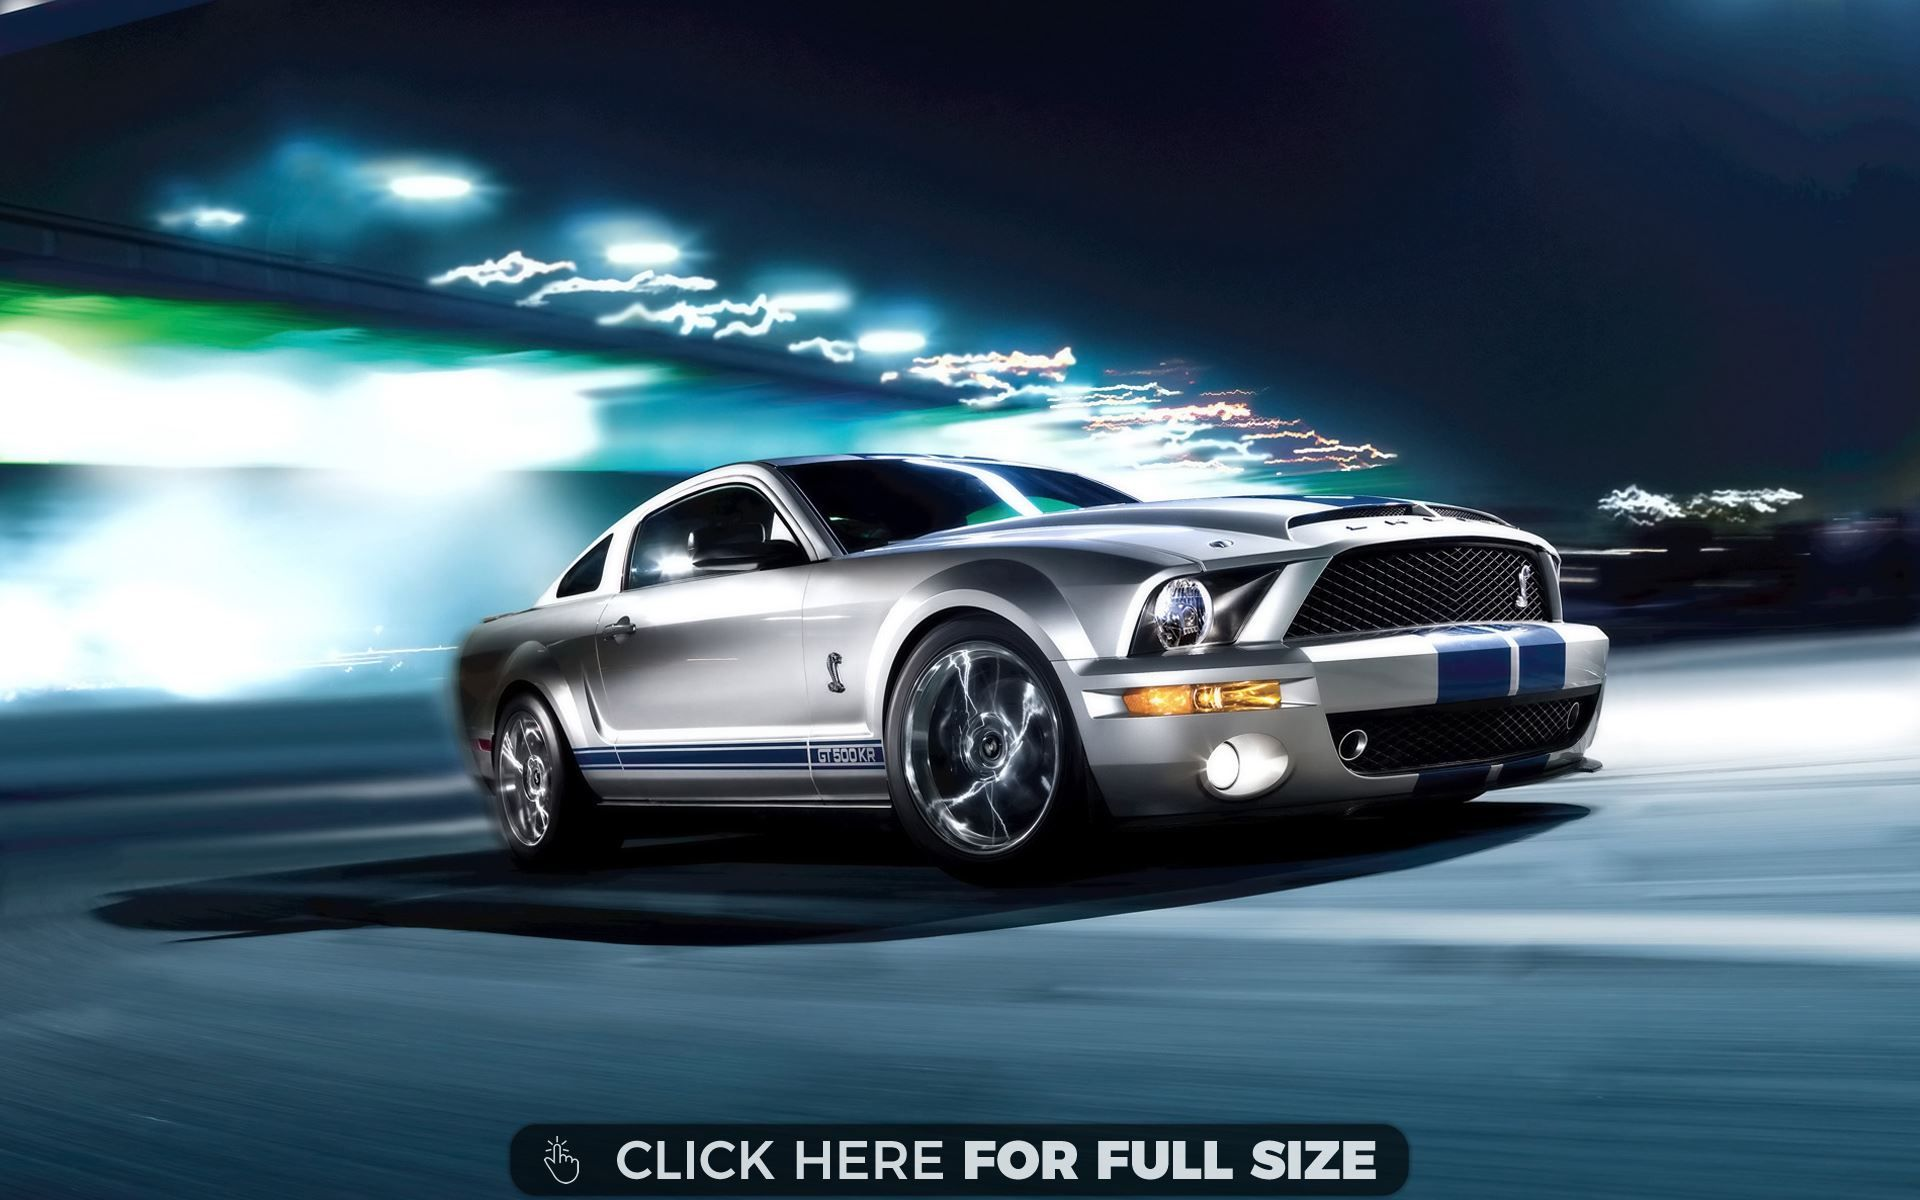 Ford Mustang Shelby4 Ford Mustang Ford Mustang Wallpaper Ford Mustang Shelby Gt500